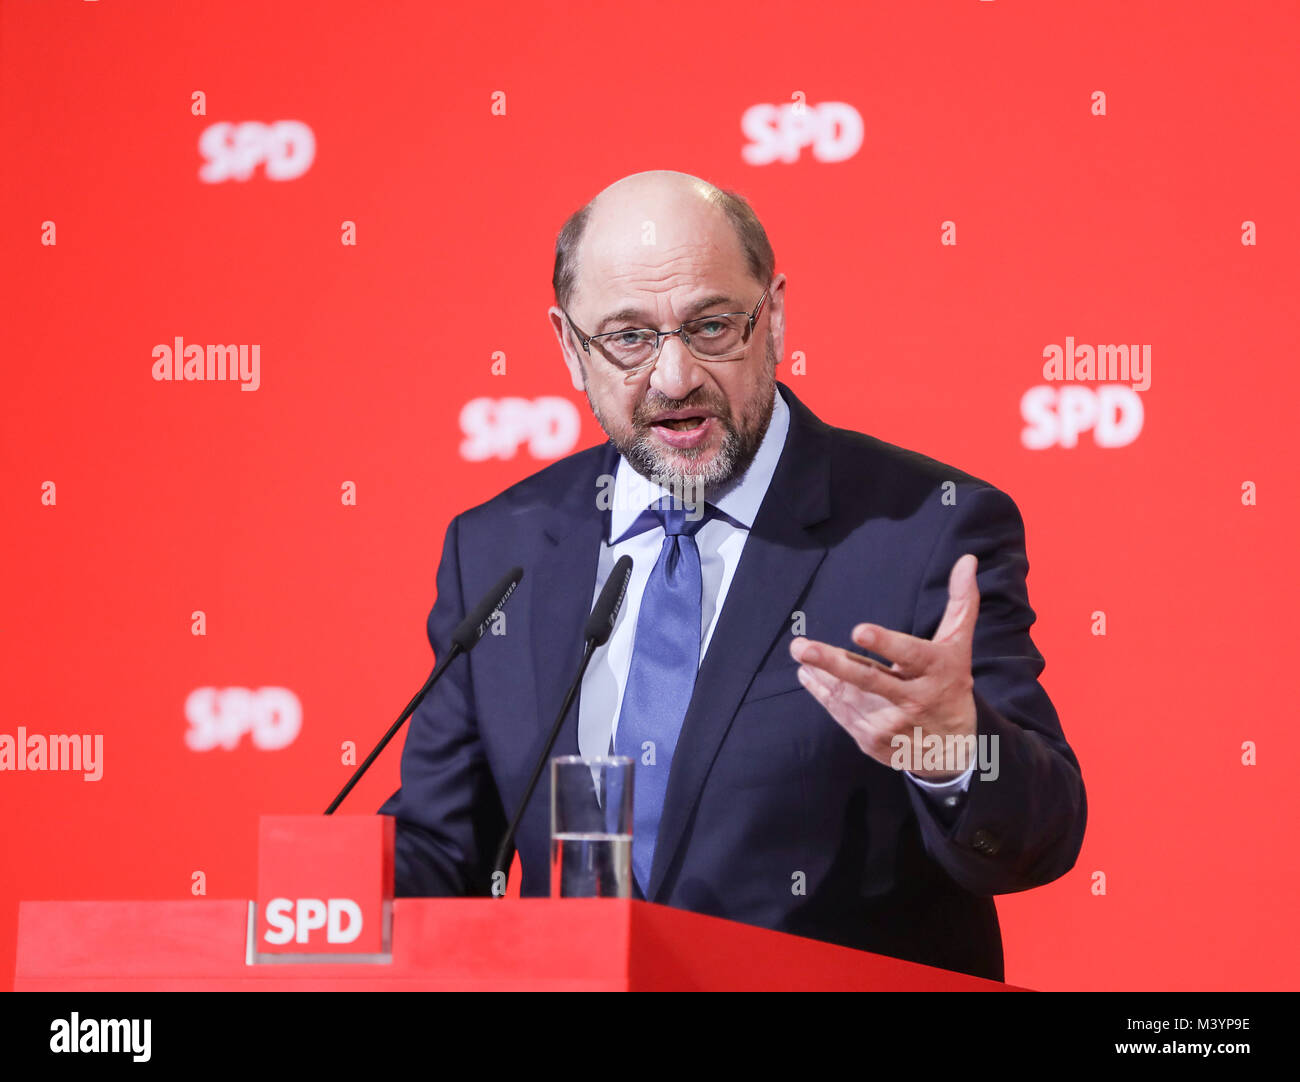 Berlin. Feb 13, 2018. Photo prise le 15 décembre 2017 montre leader social-démocrate allemand Martin Schulz Photo Stock